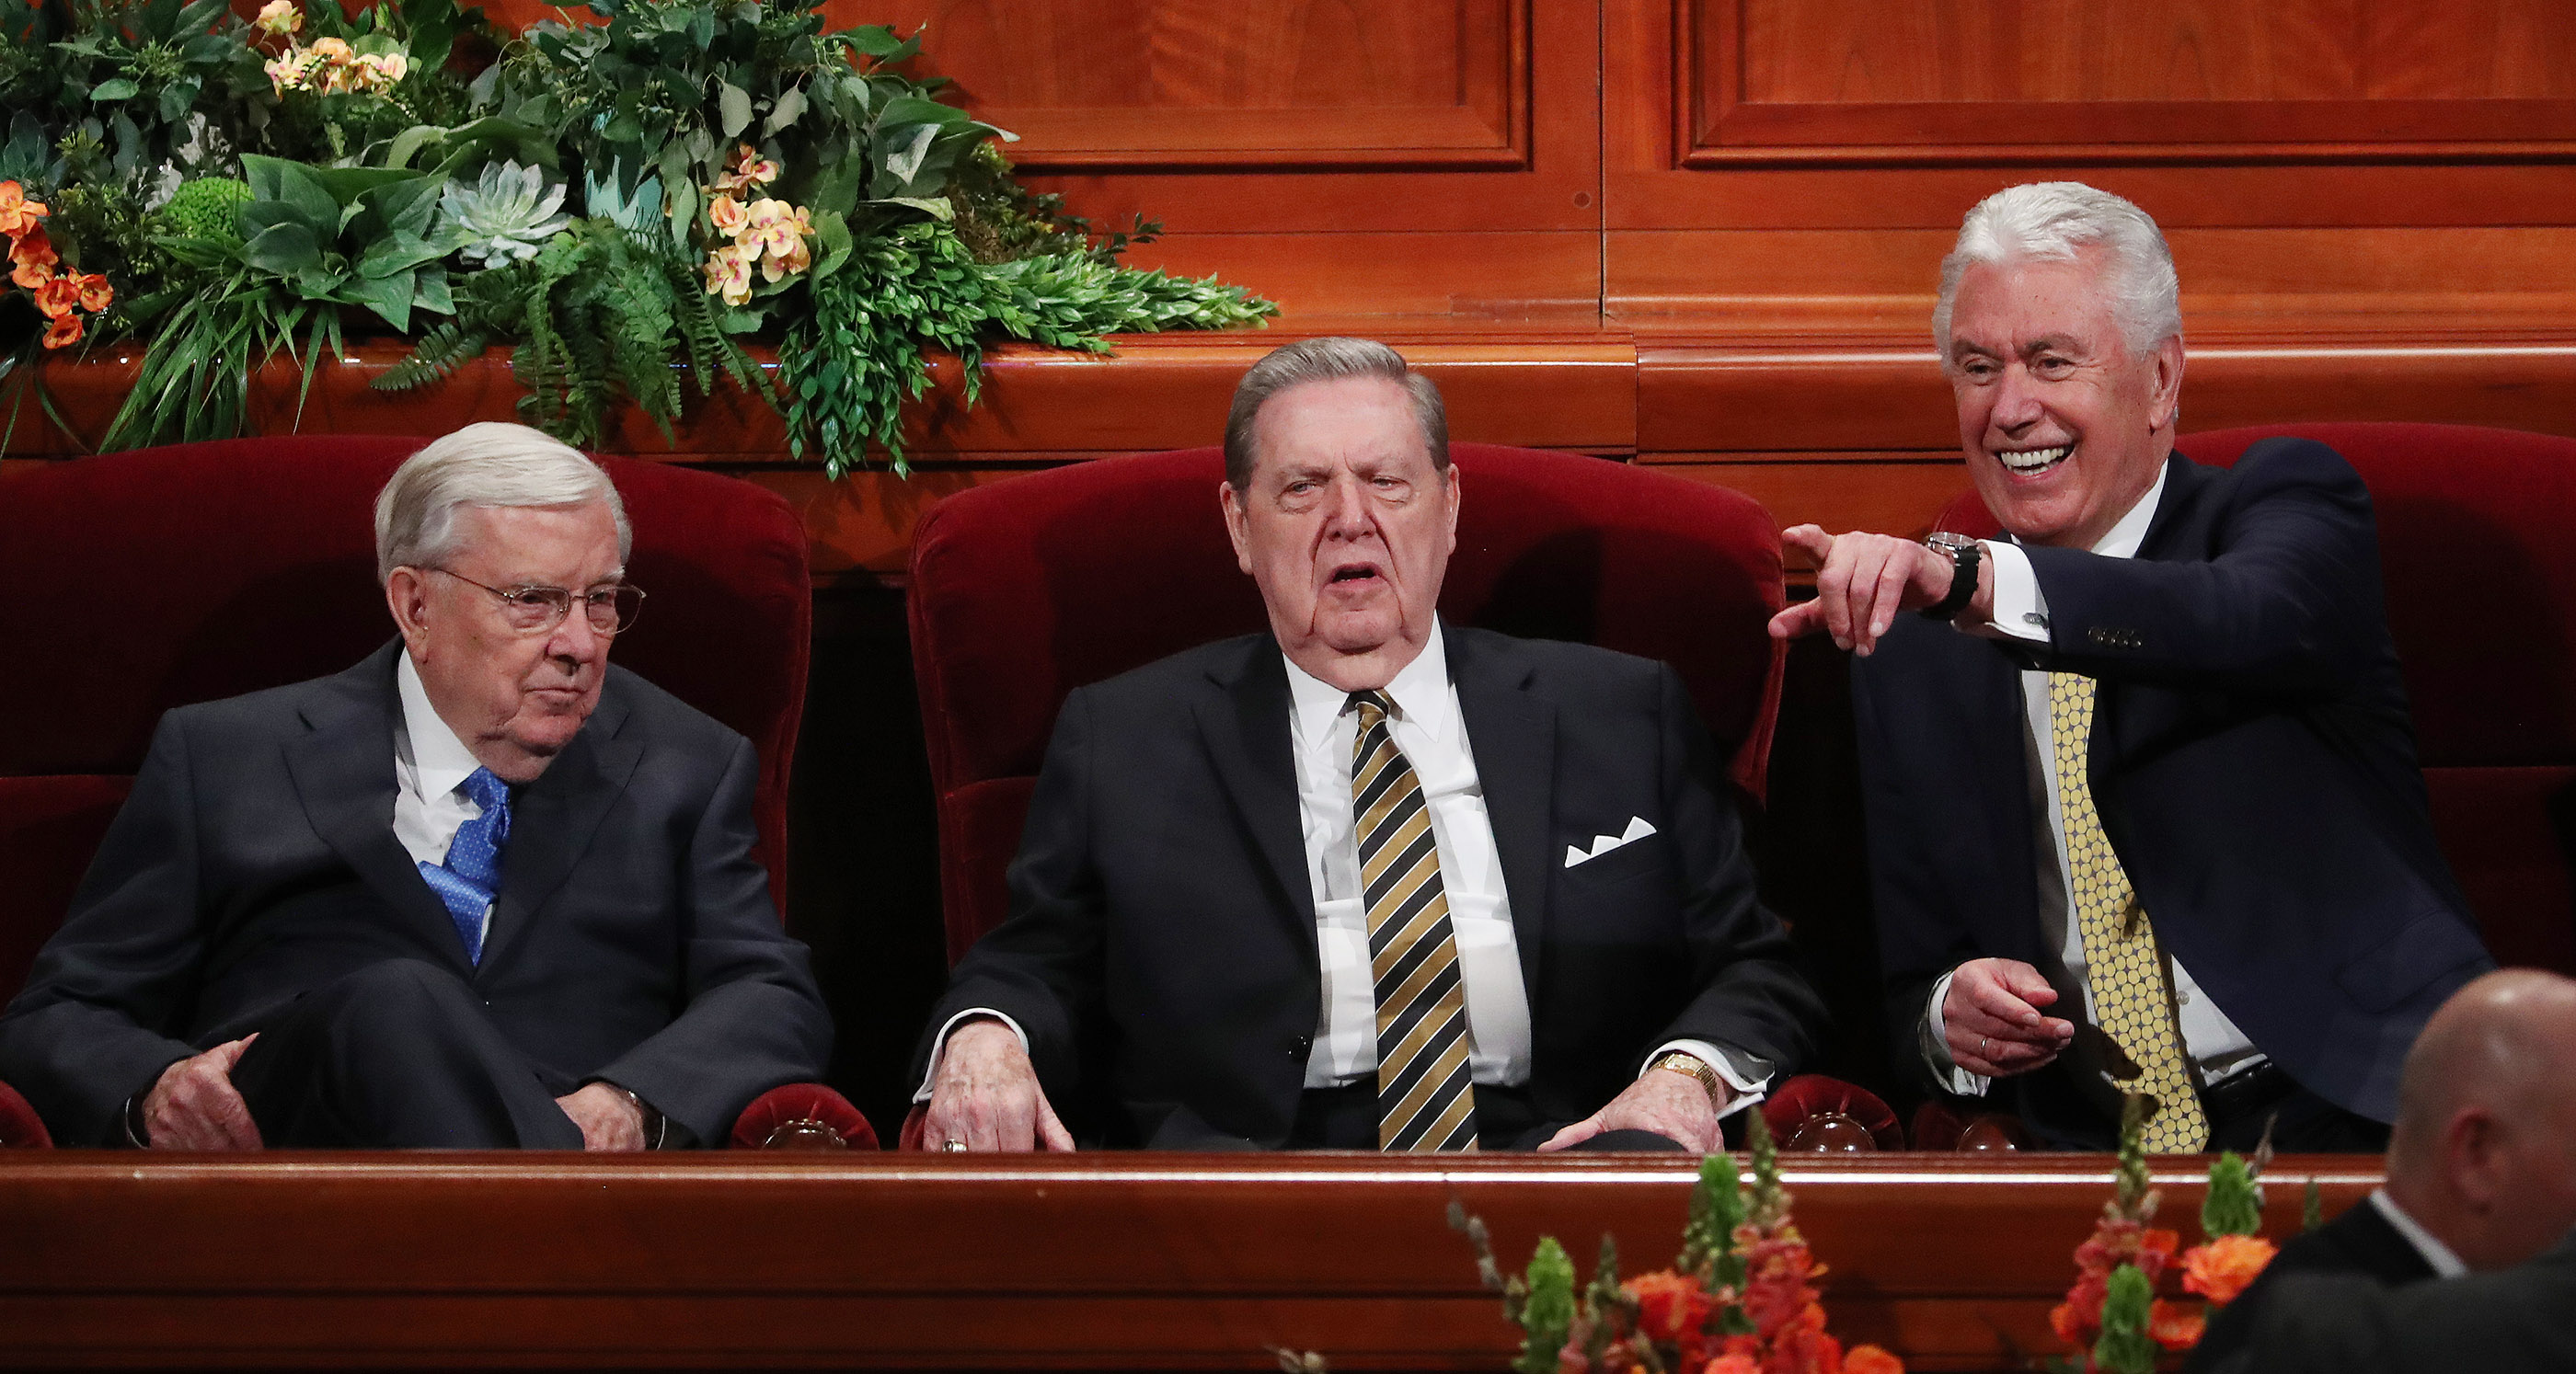 President M. Russell Ballard, acting president of the Quorum of the Twelve Apostles of The Church of Jesus Christ of Latter-day Saints, Elder Jeffrey R. Holland and Elder Dieter F. Uchtdorf react to attendees prior to the 189th Annual General Conference of The Church of Jesus Christ of Latter-day Saints in Salt Lake City on Saturday, April 6, 2019.